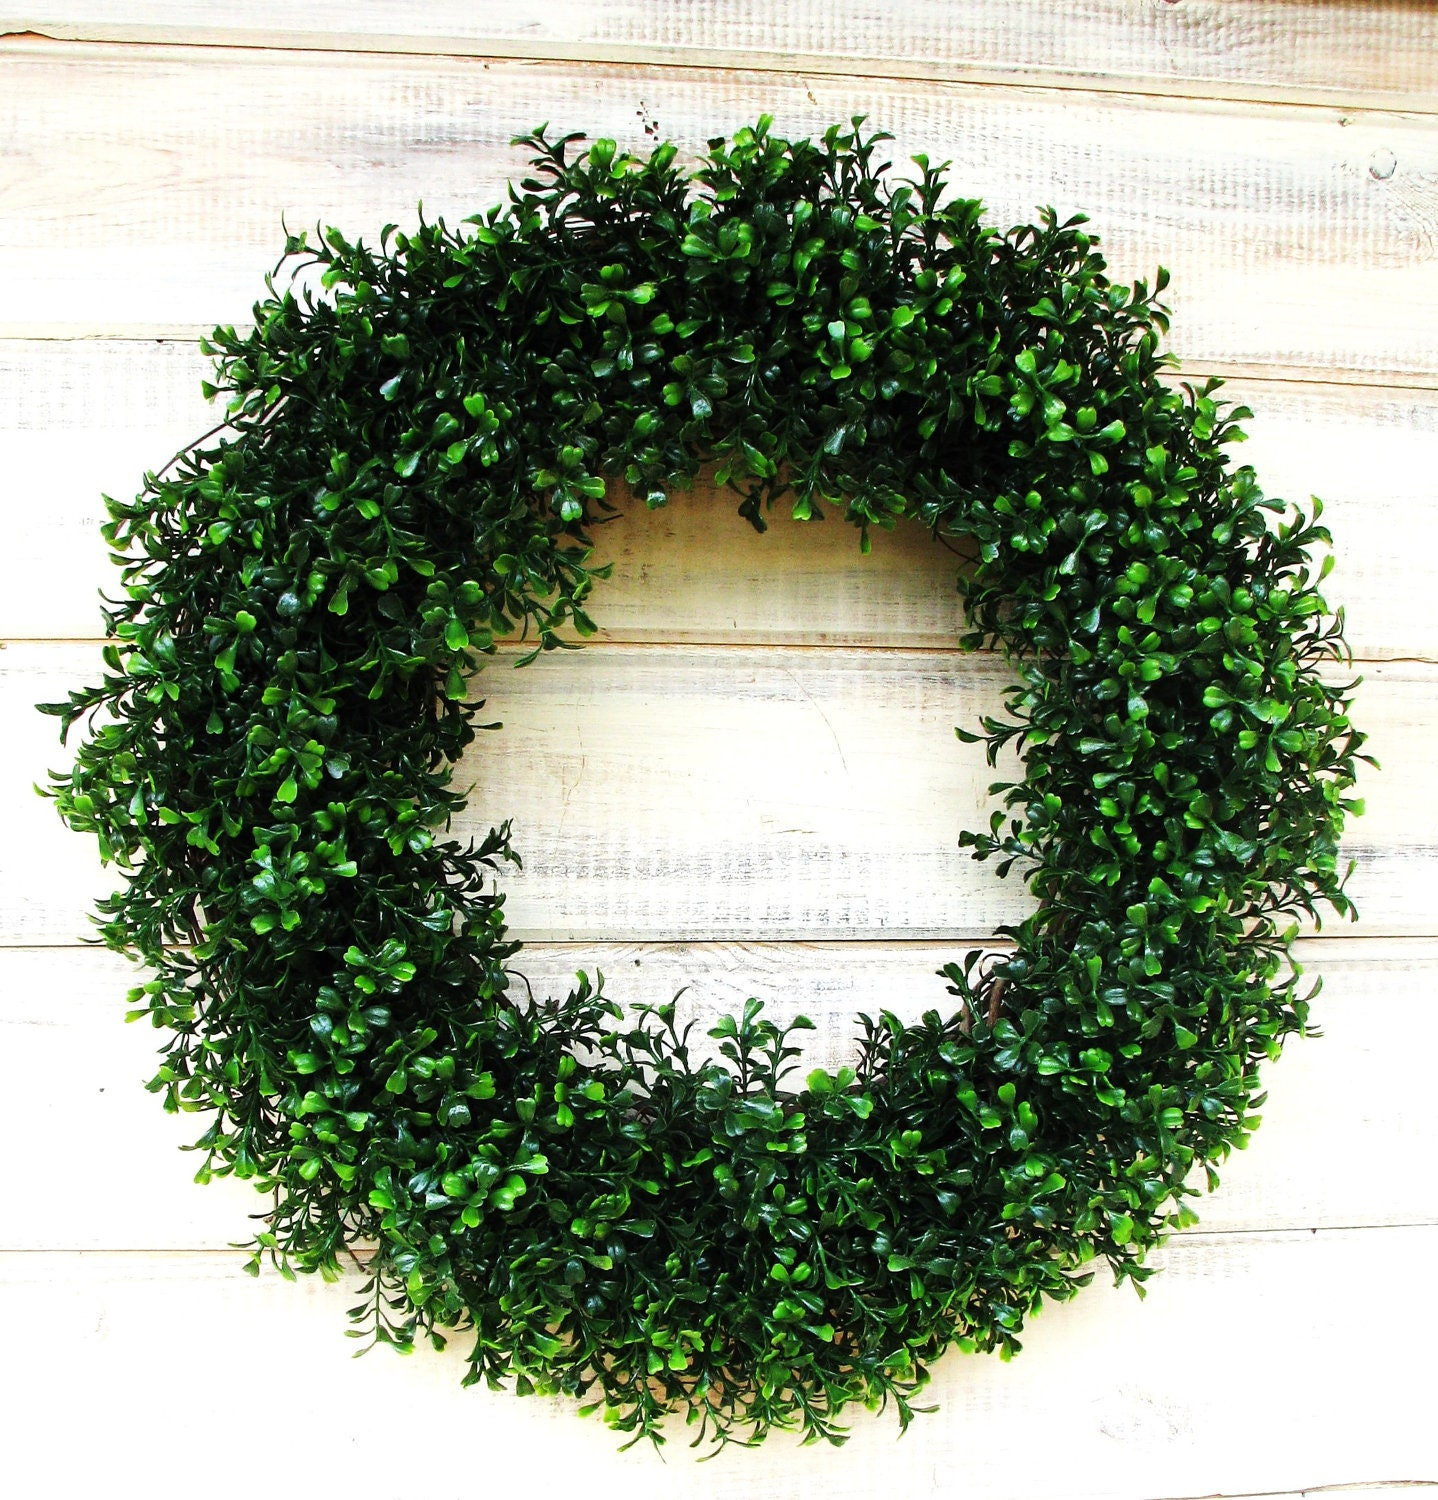 Boxwood Wreath Fall Wreath Winter Wreath Large BOXWOOD Door WREATH Home  Decor Fall Wreaths Wedding Decor Housewarming Gift Scented Wreath